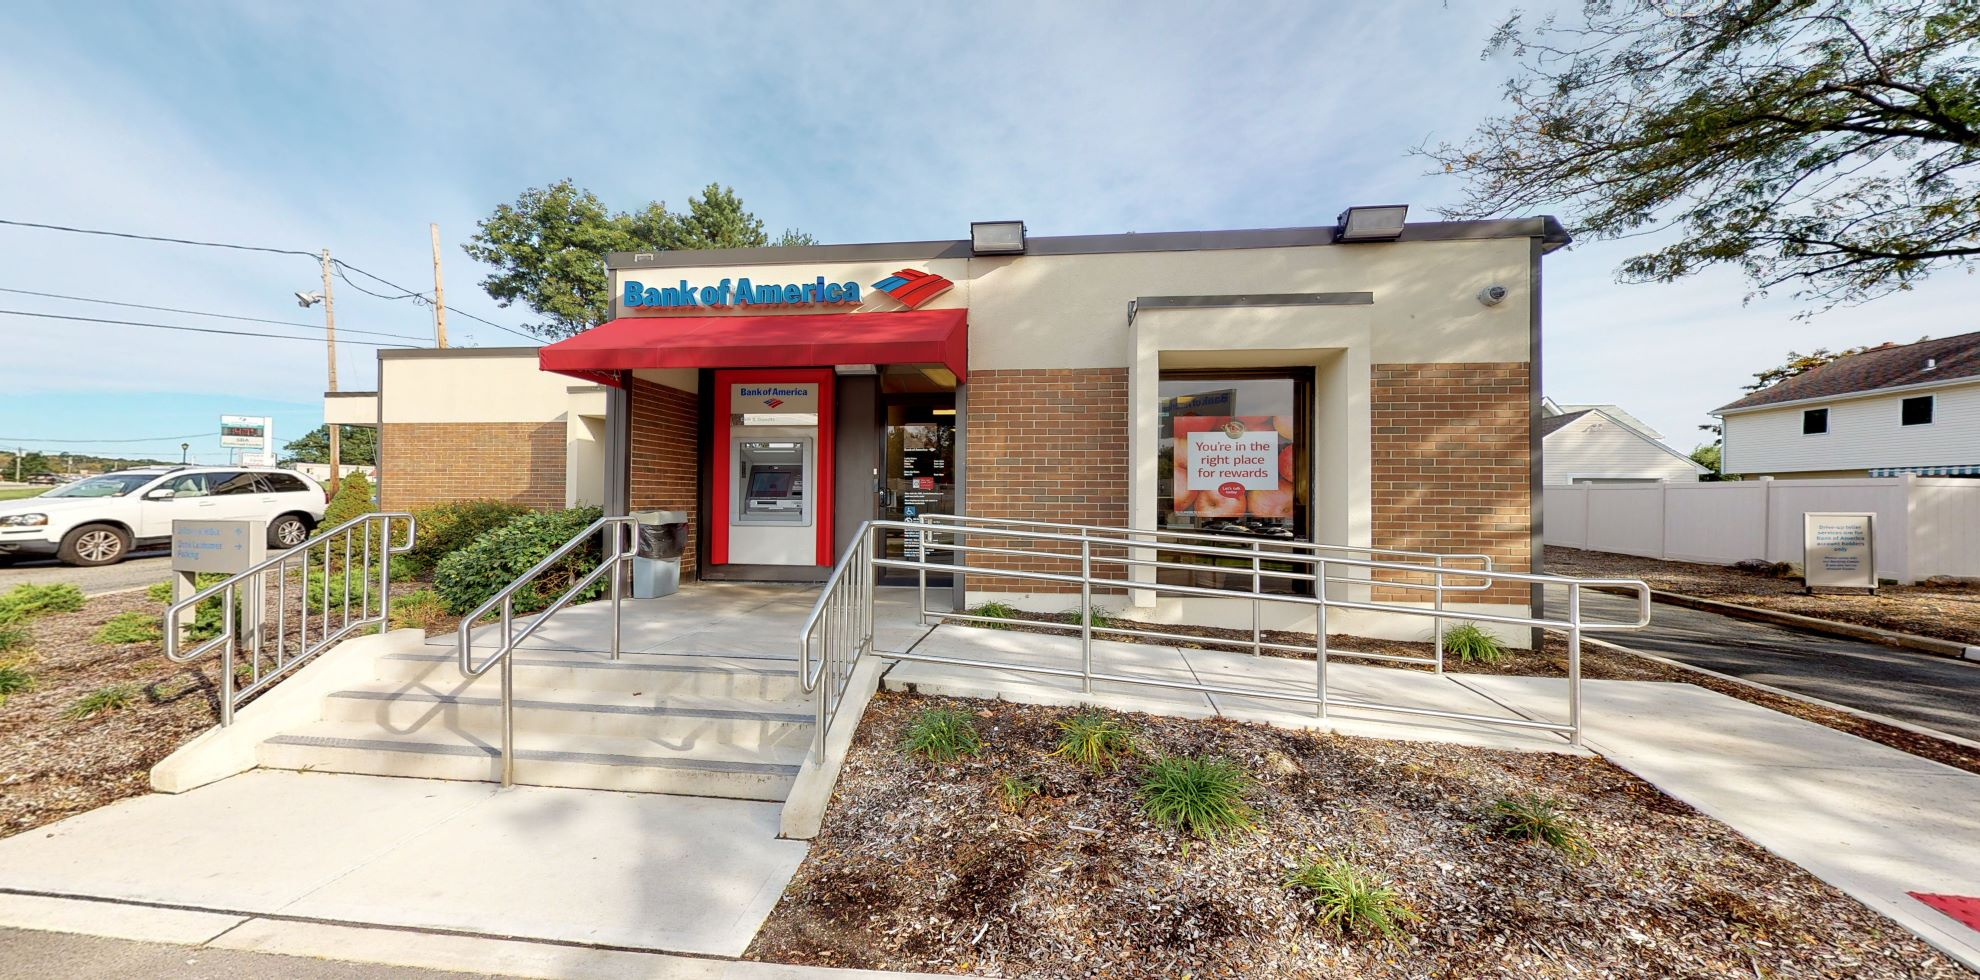 Bank of America financial center with walk-up ATM   1400 Route 23, Butler, NJ 07405